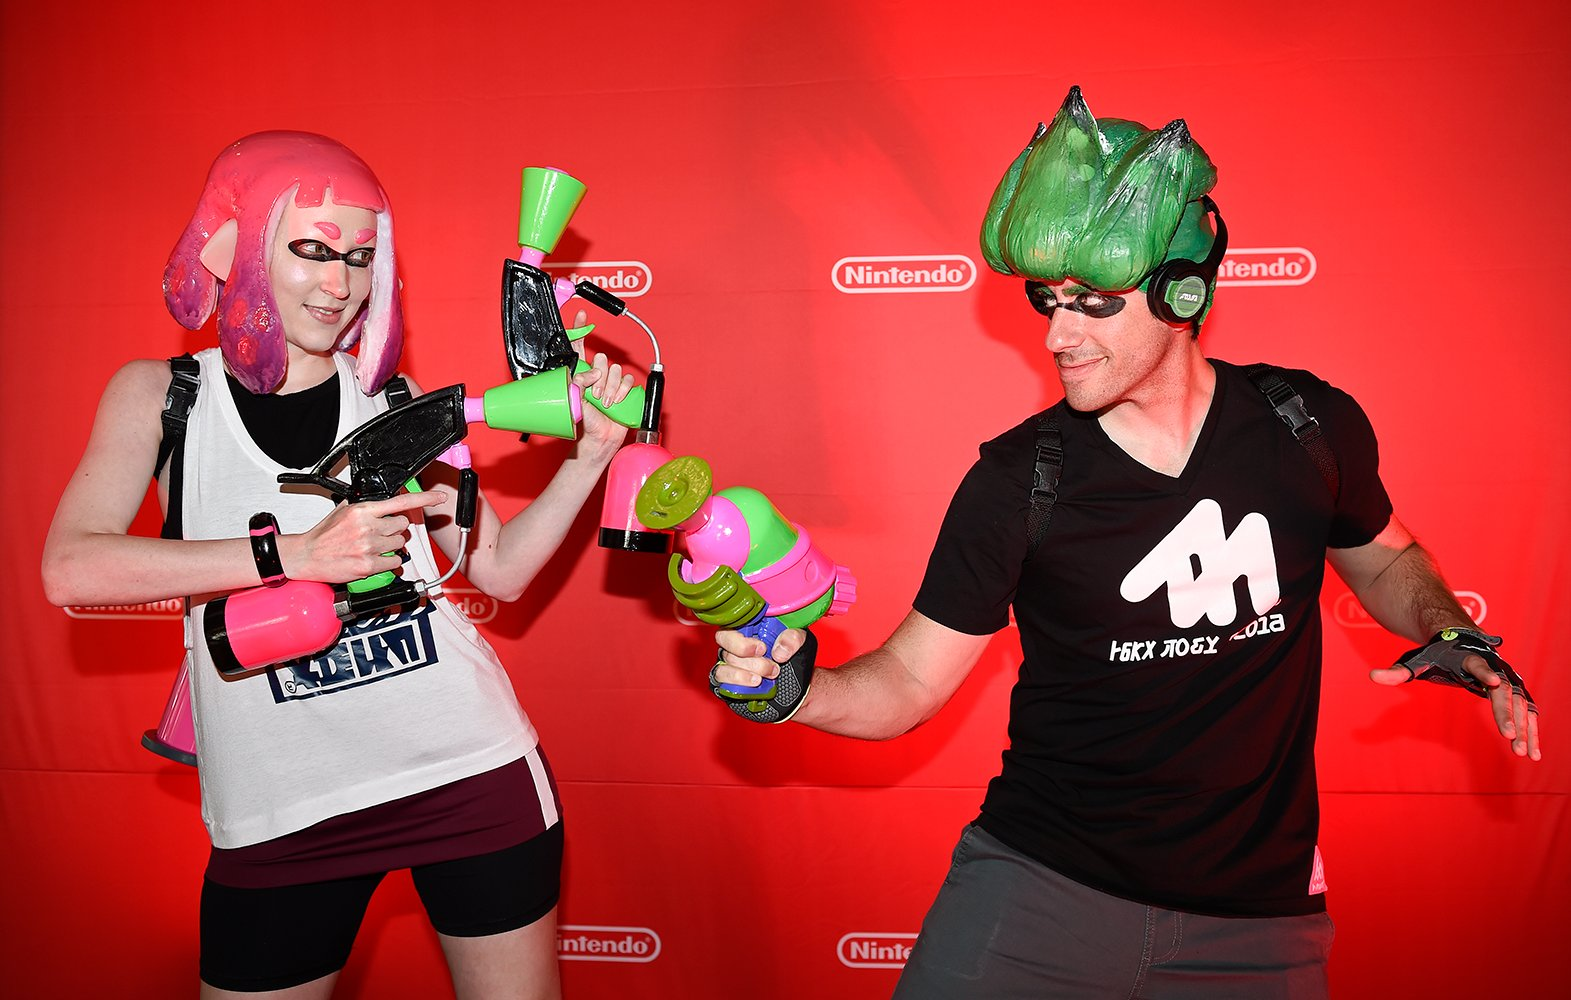 San_Diego_ComicCon_Splatoon_2_Cosplay_Photo_1